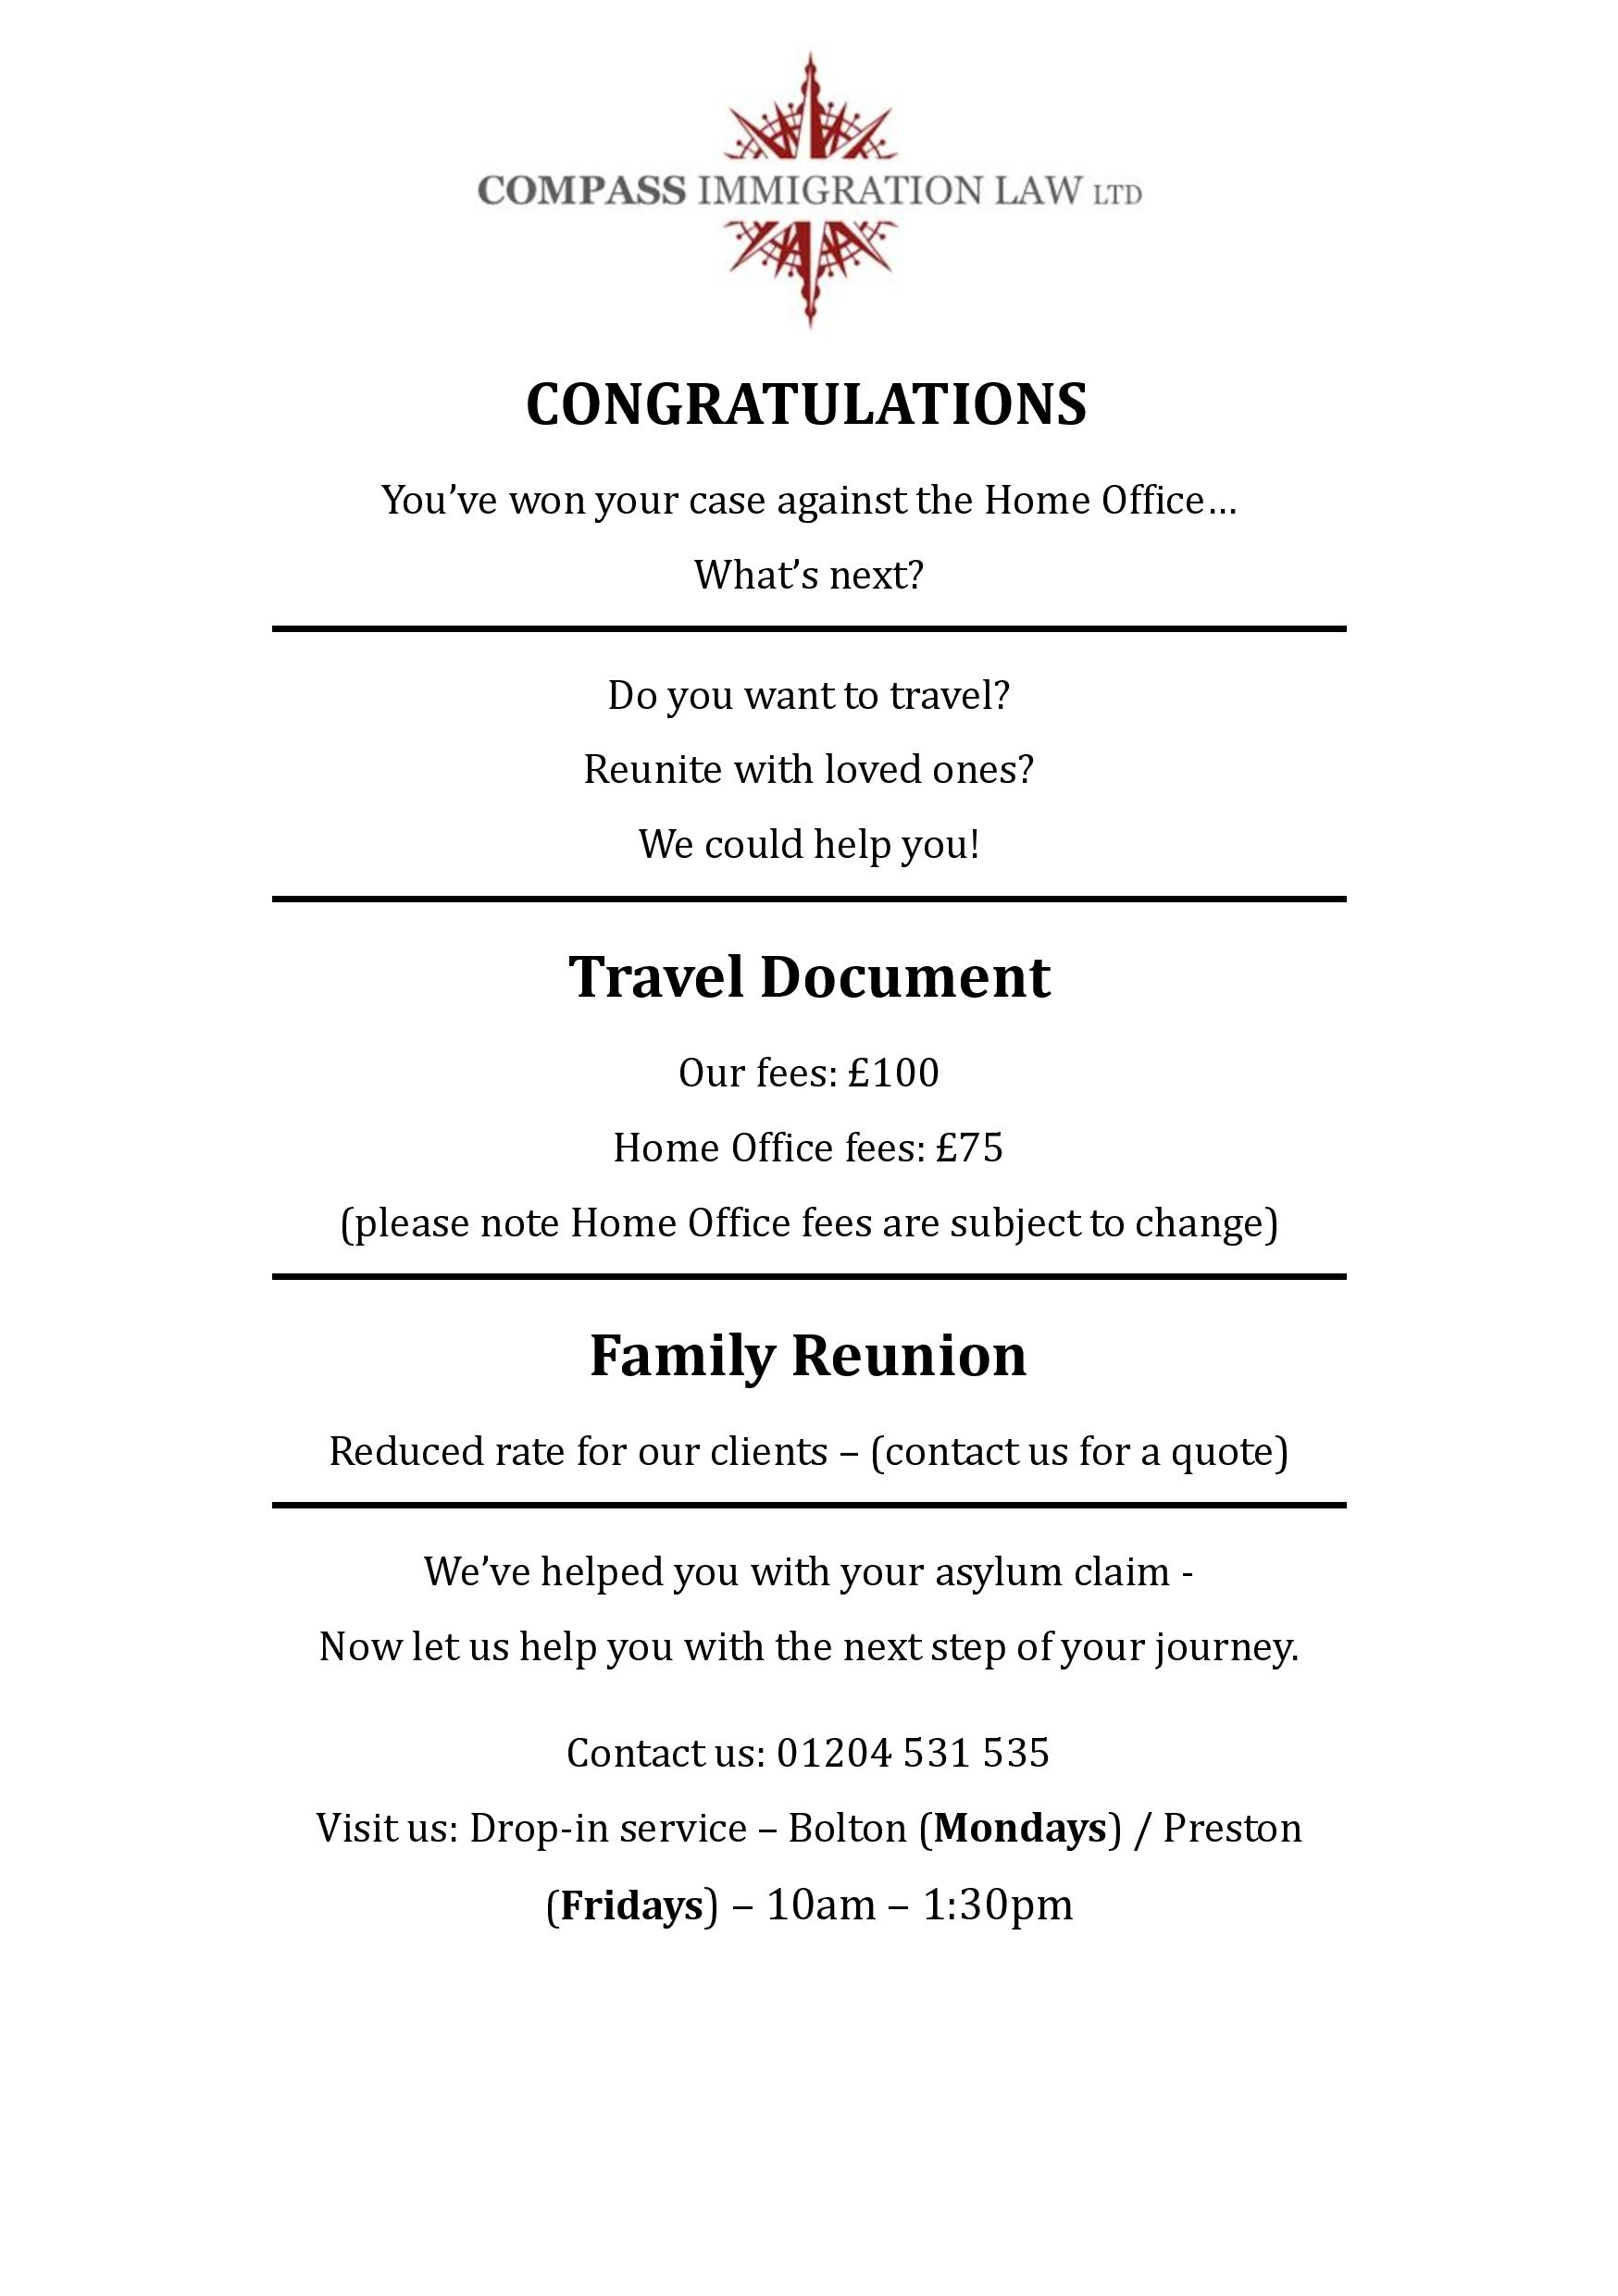 Travel doc and fam reunion 2 - PDF-page-001 (1)